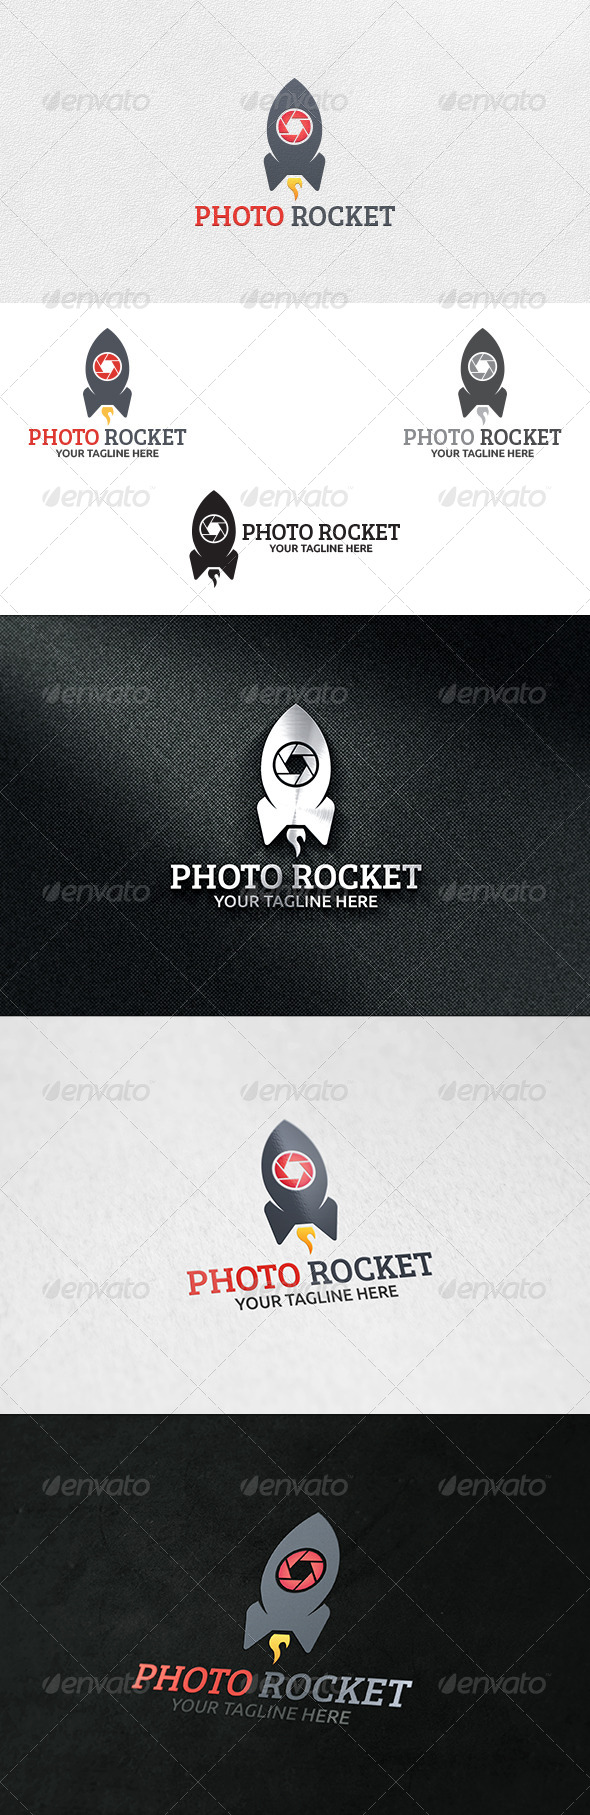 GraphicRiver Photo Rocket Logo Template 6304774